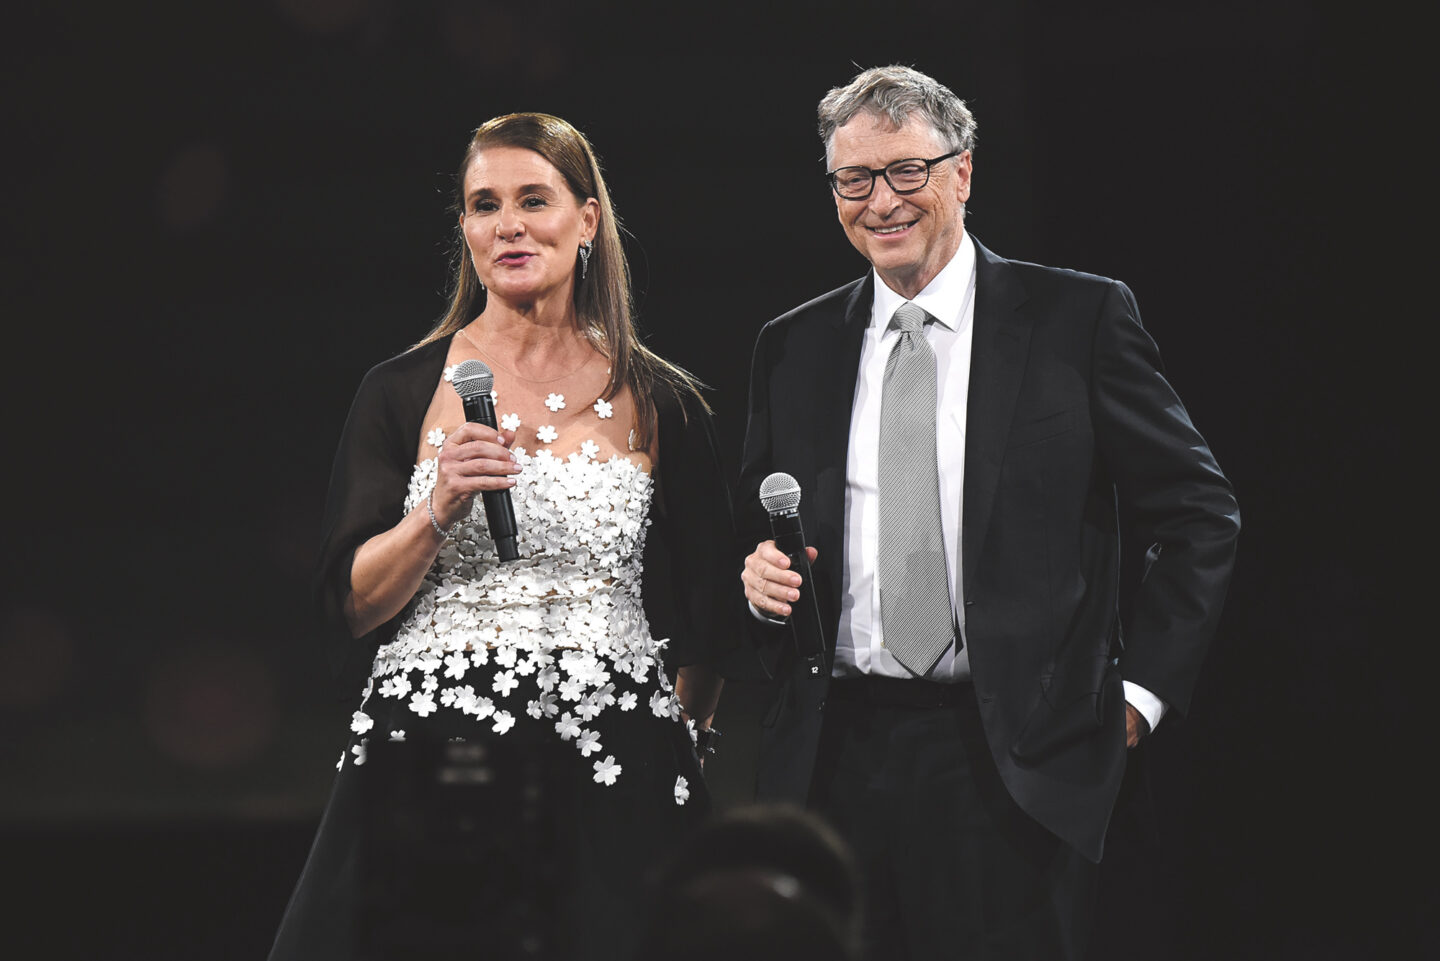 Bill & Melinda Gates: What They've Said About Marriage